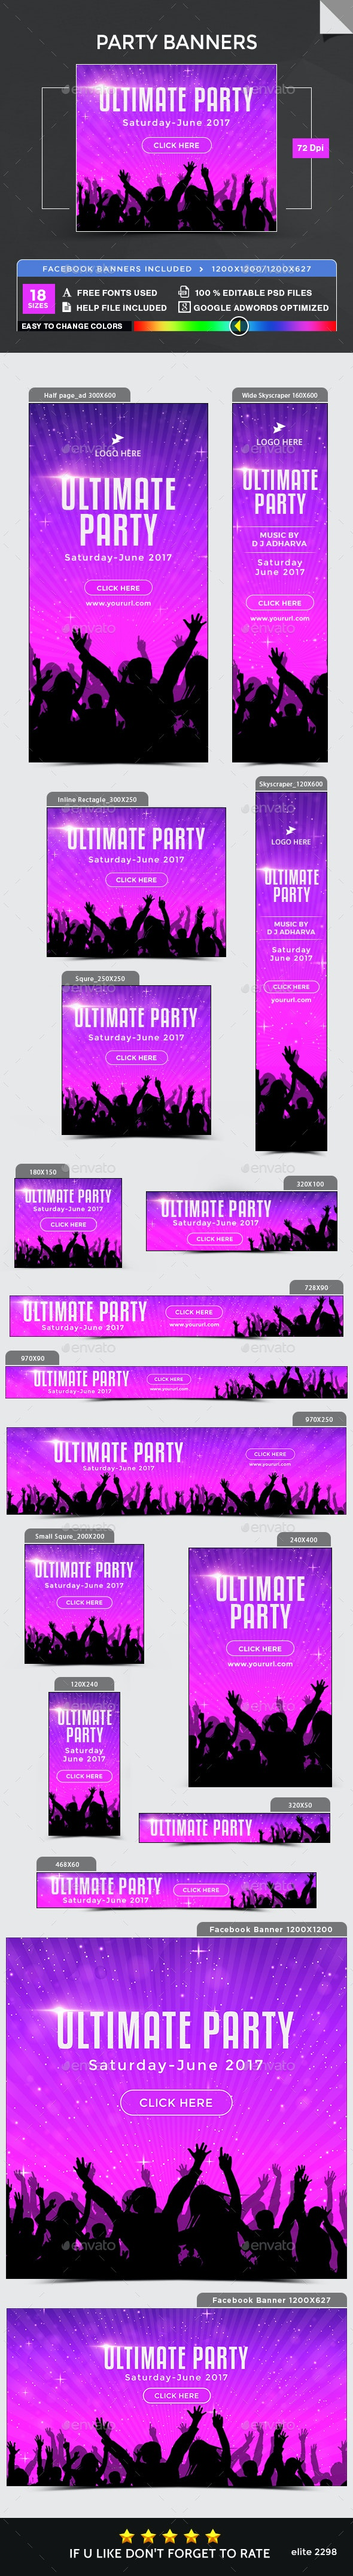 Party Banners - Image Included - Banners & Ads Web Elements